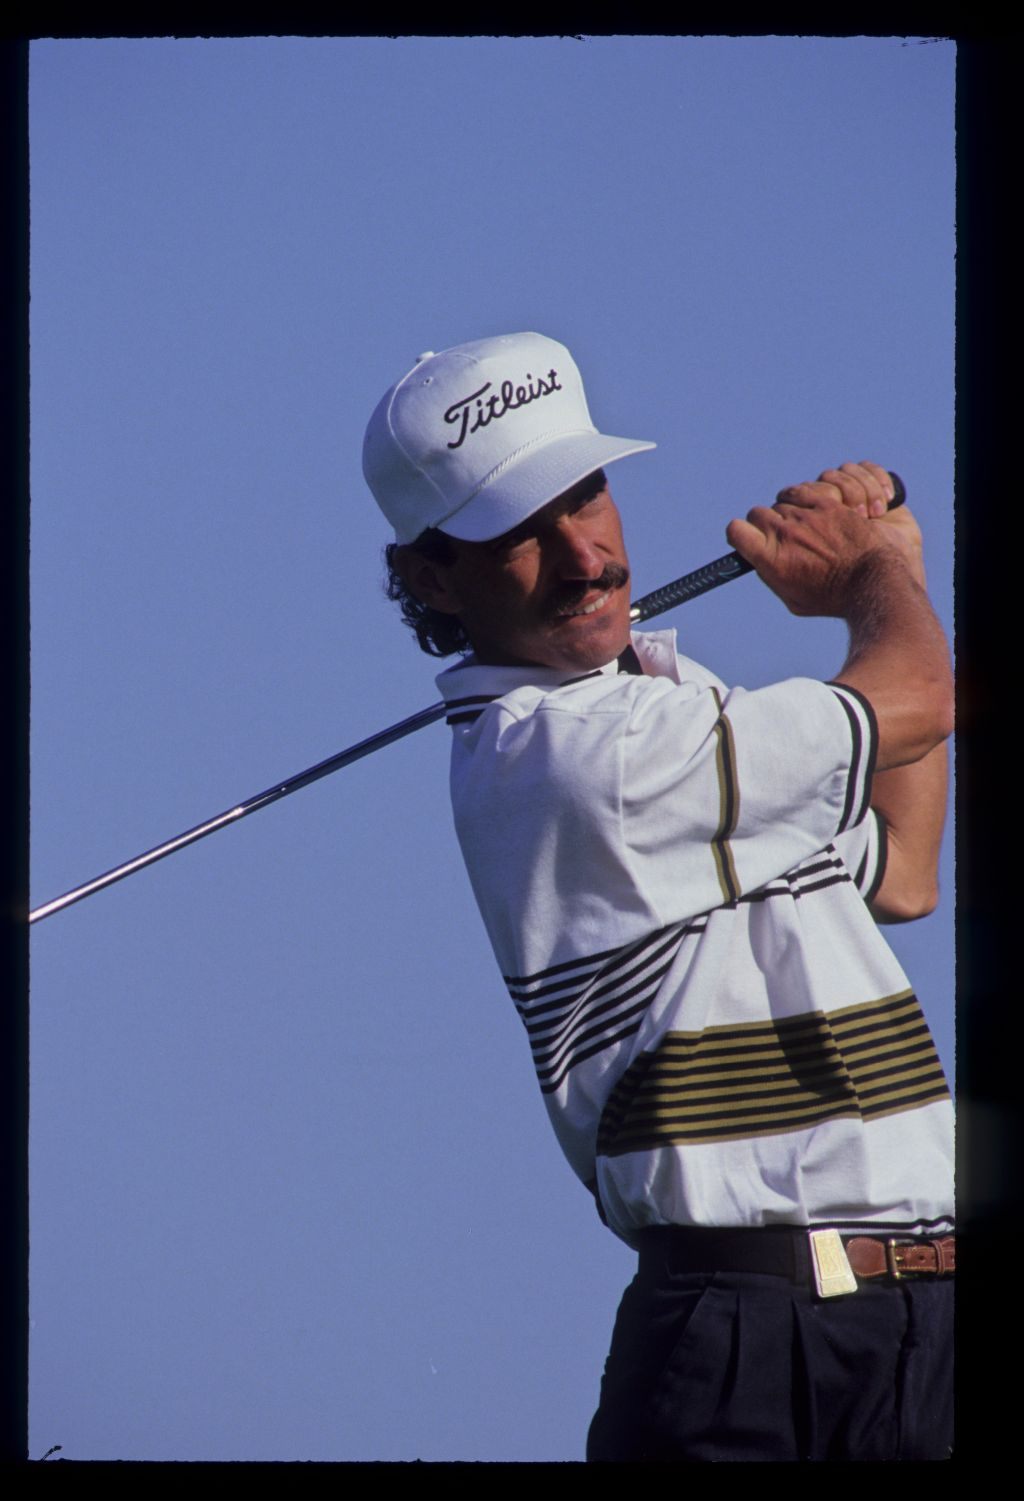 Corey Pavin following through on the tee during the 1992 Nestle Invitational